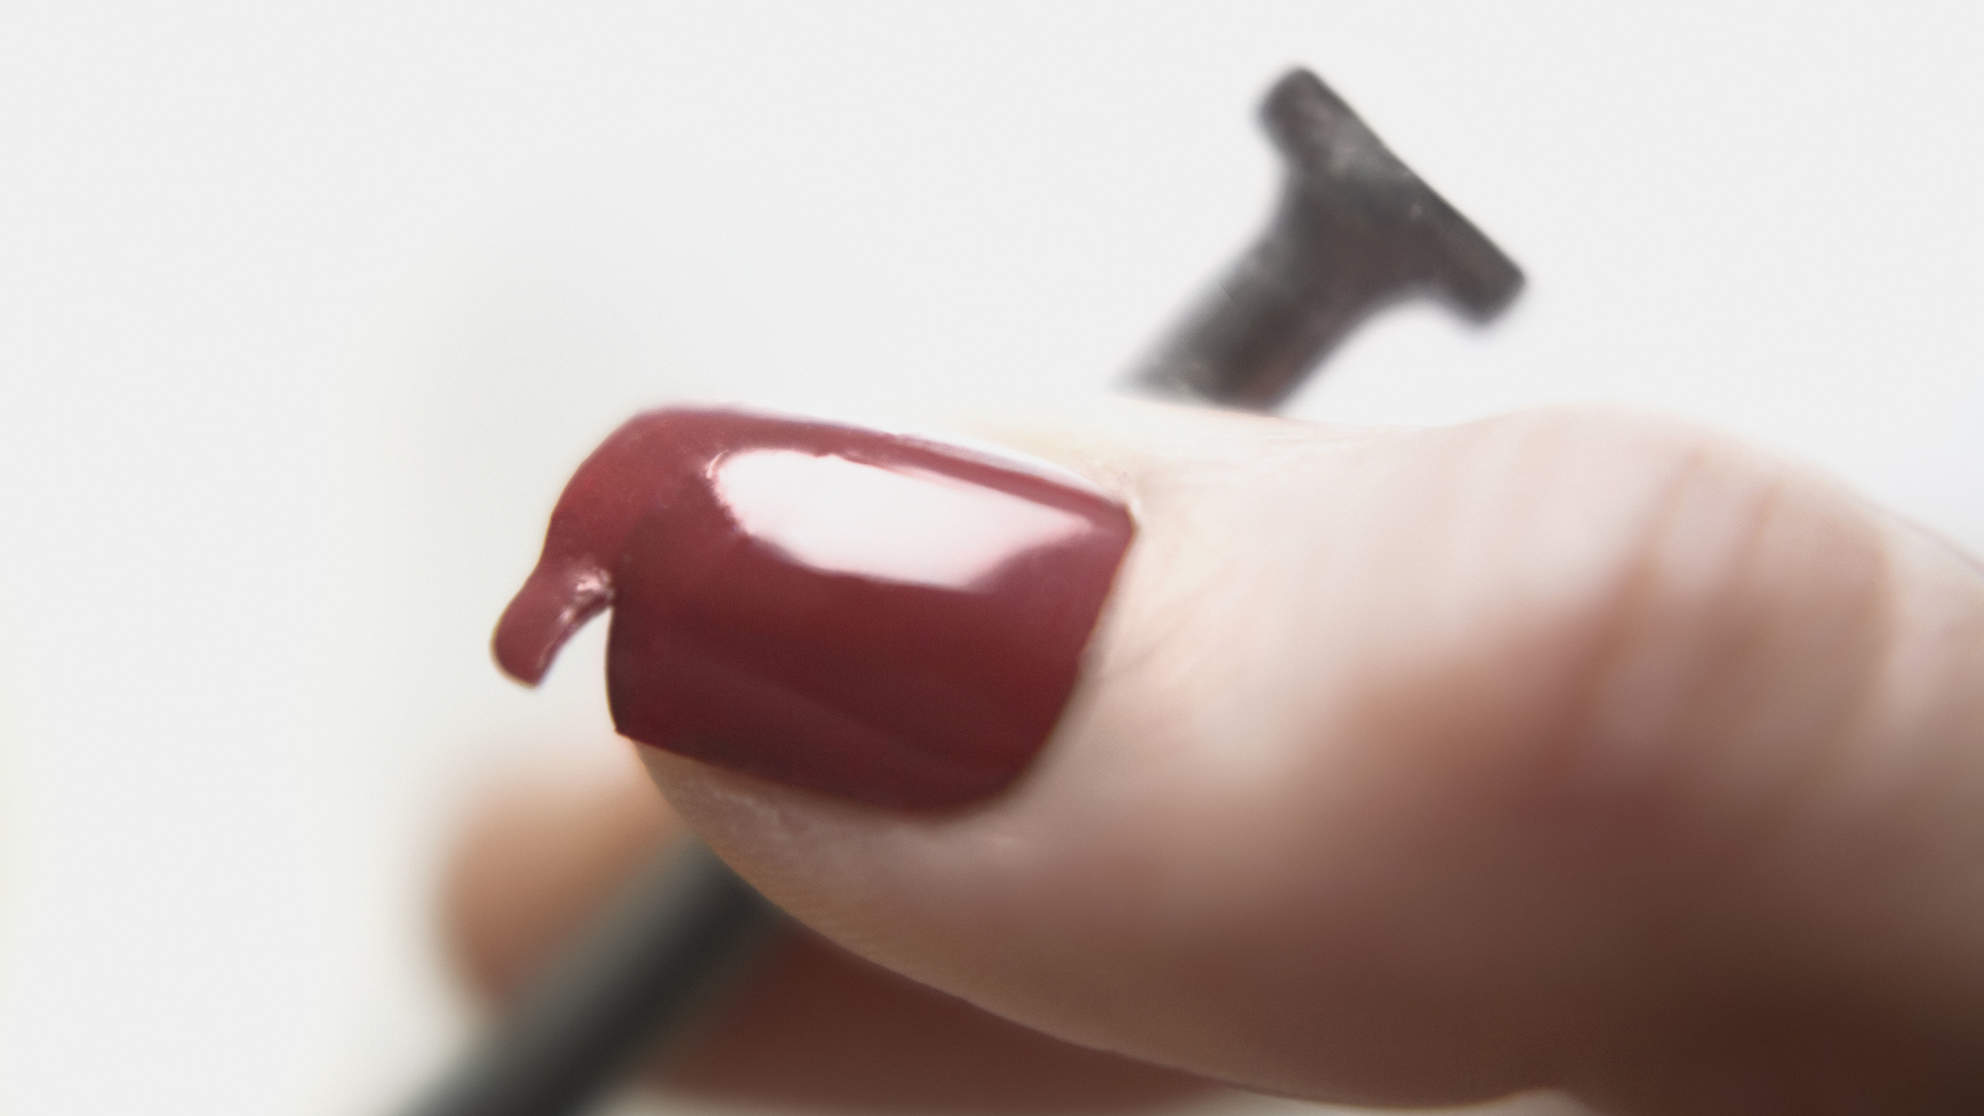 How to Fix a Broken Nail with a Tea Bag